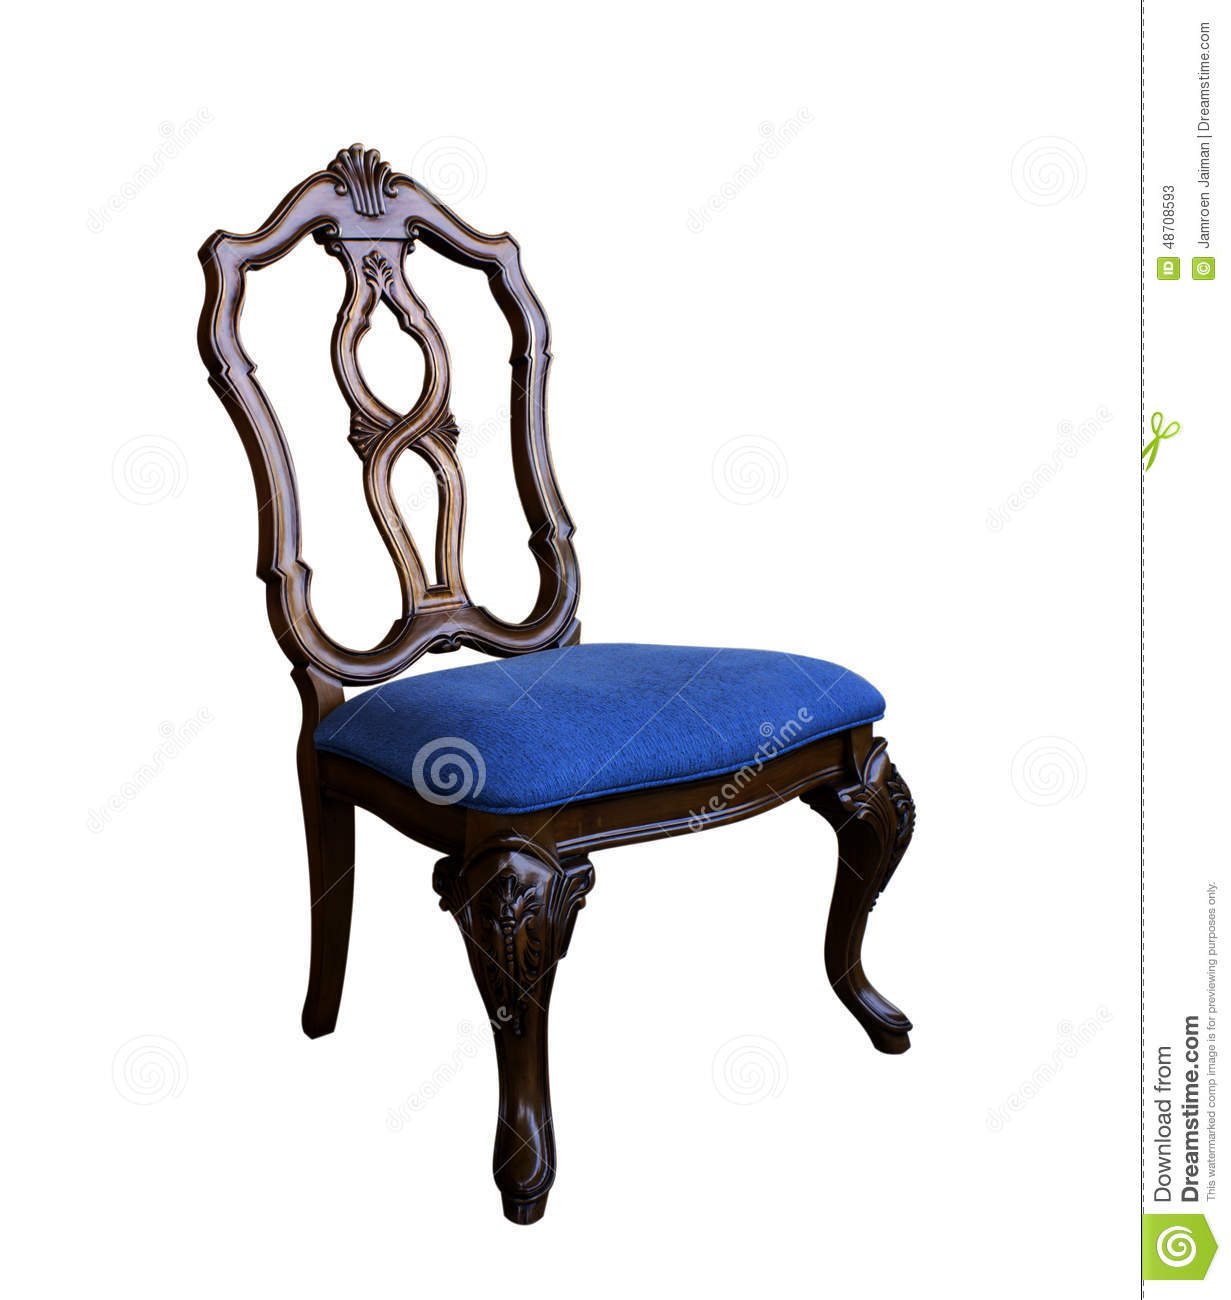 Antique Chair with Cushion isolated with clipping path - Antique Chair Stock Image. Image Of Seat, Retro, Teal - 48708593